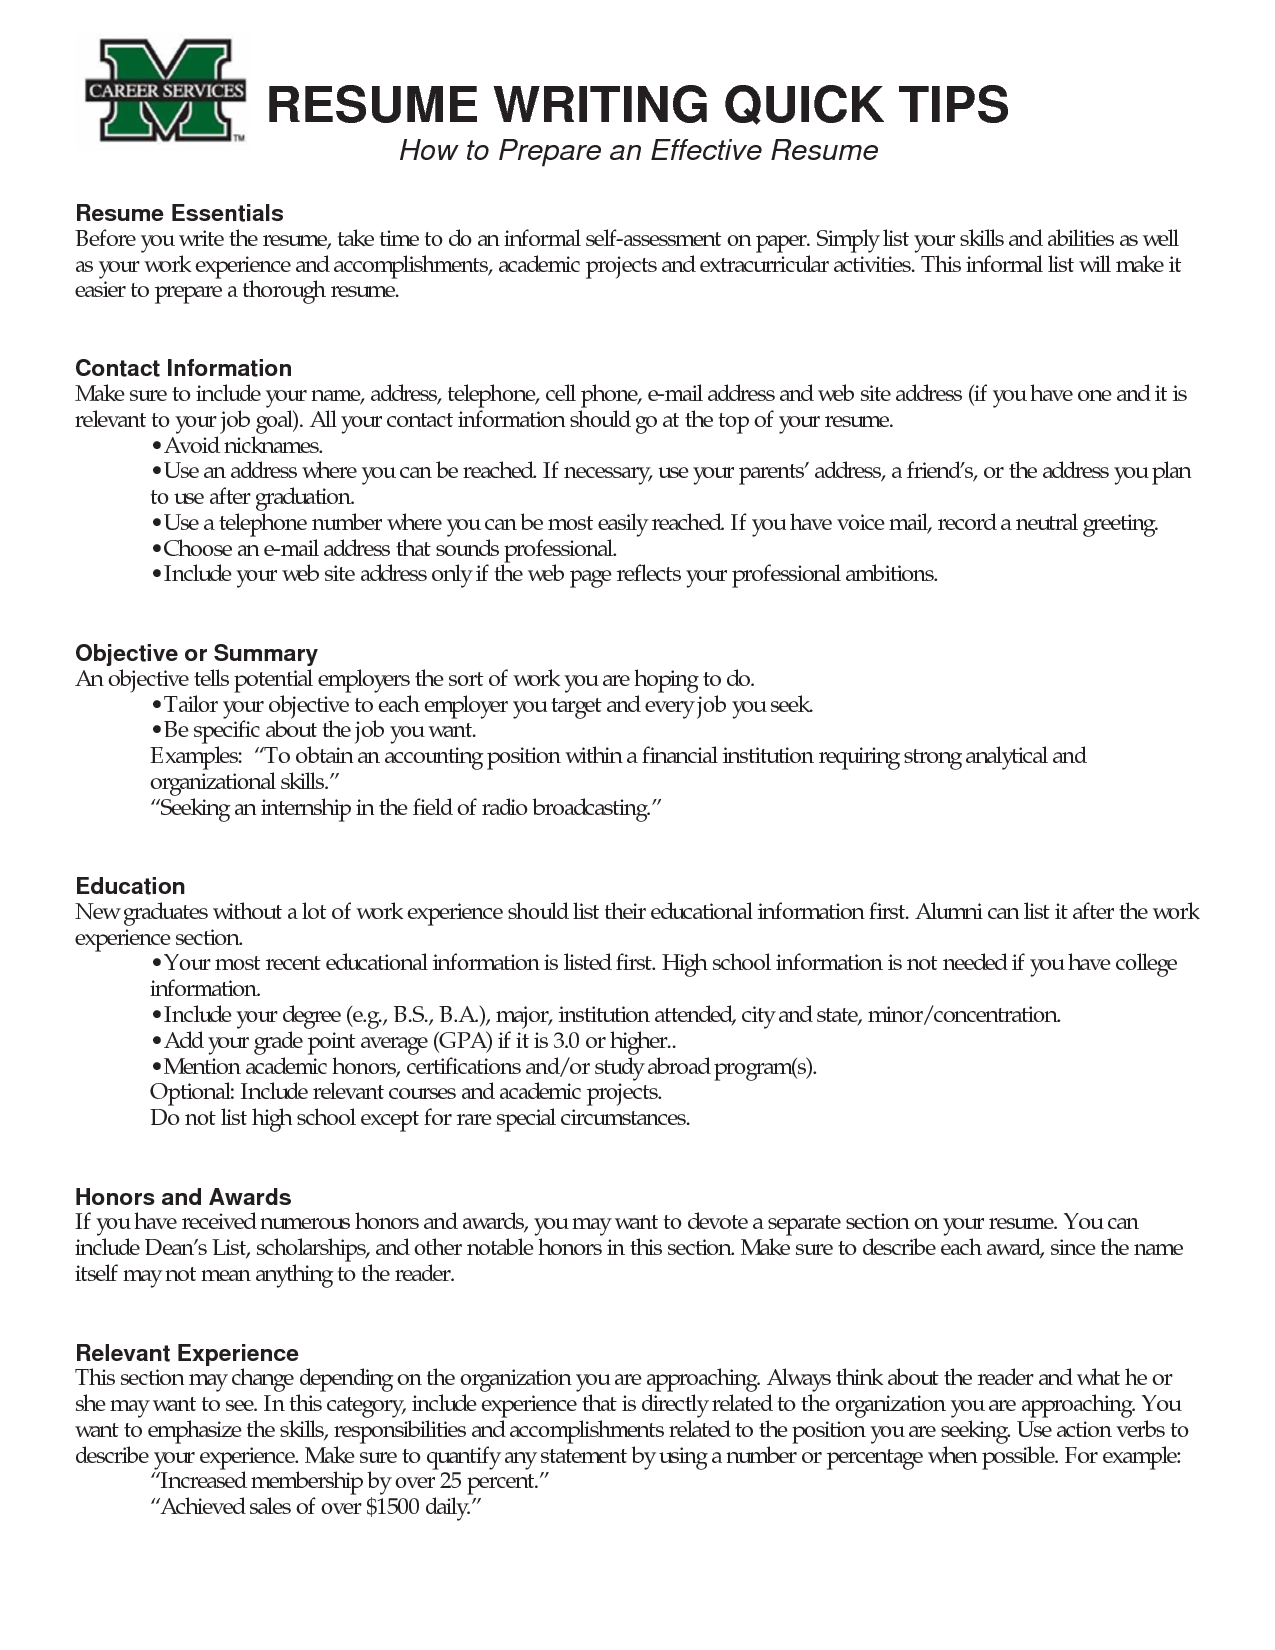 Resume writing business plan